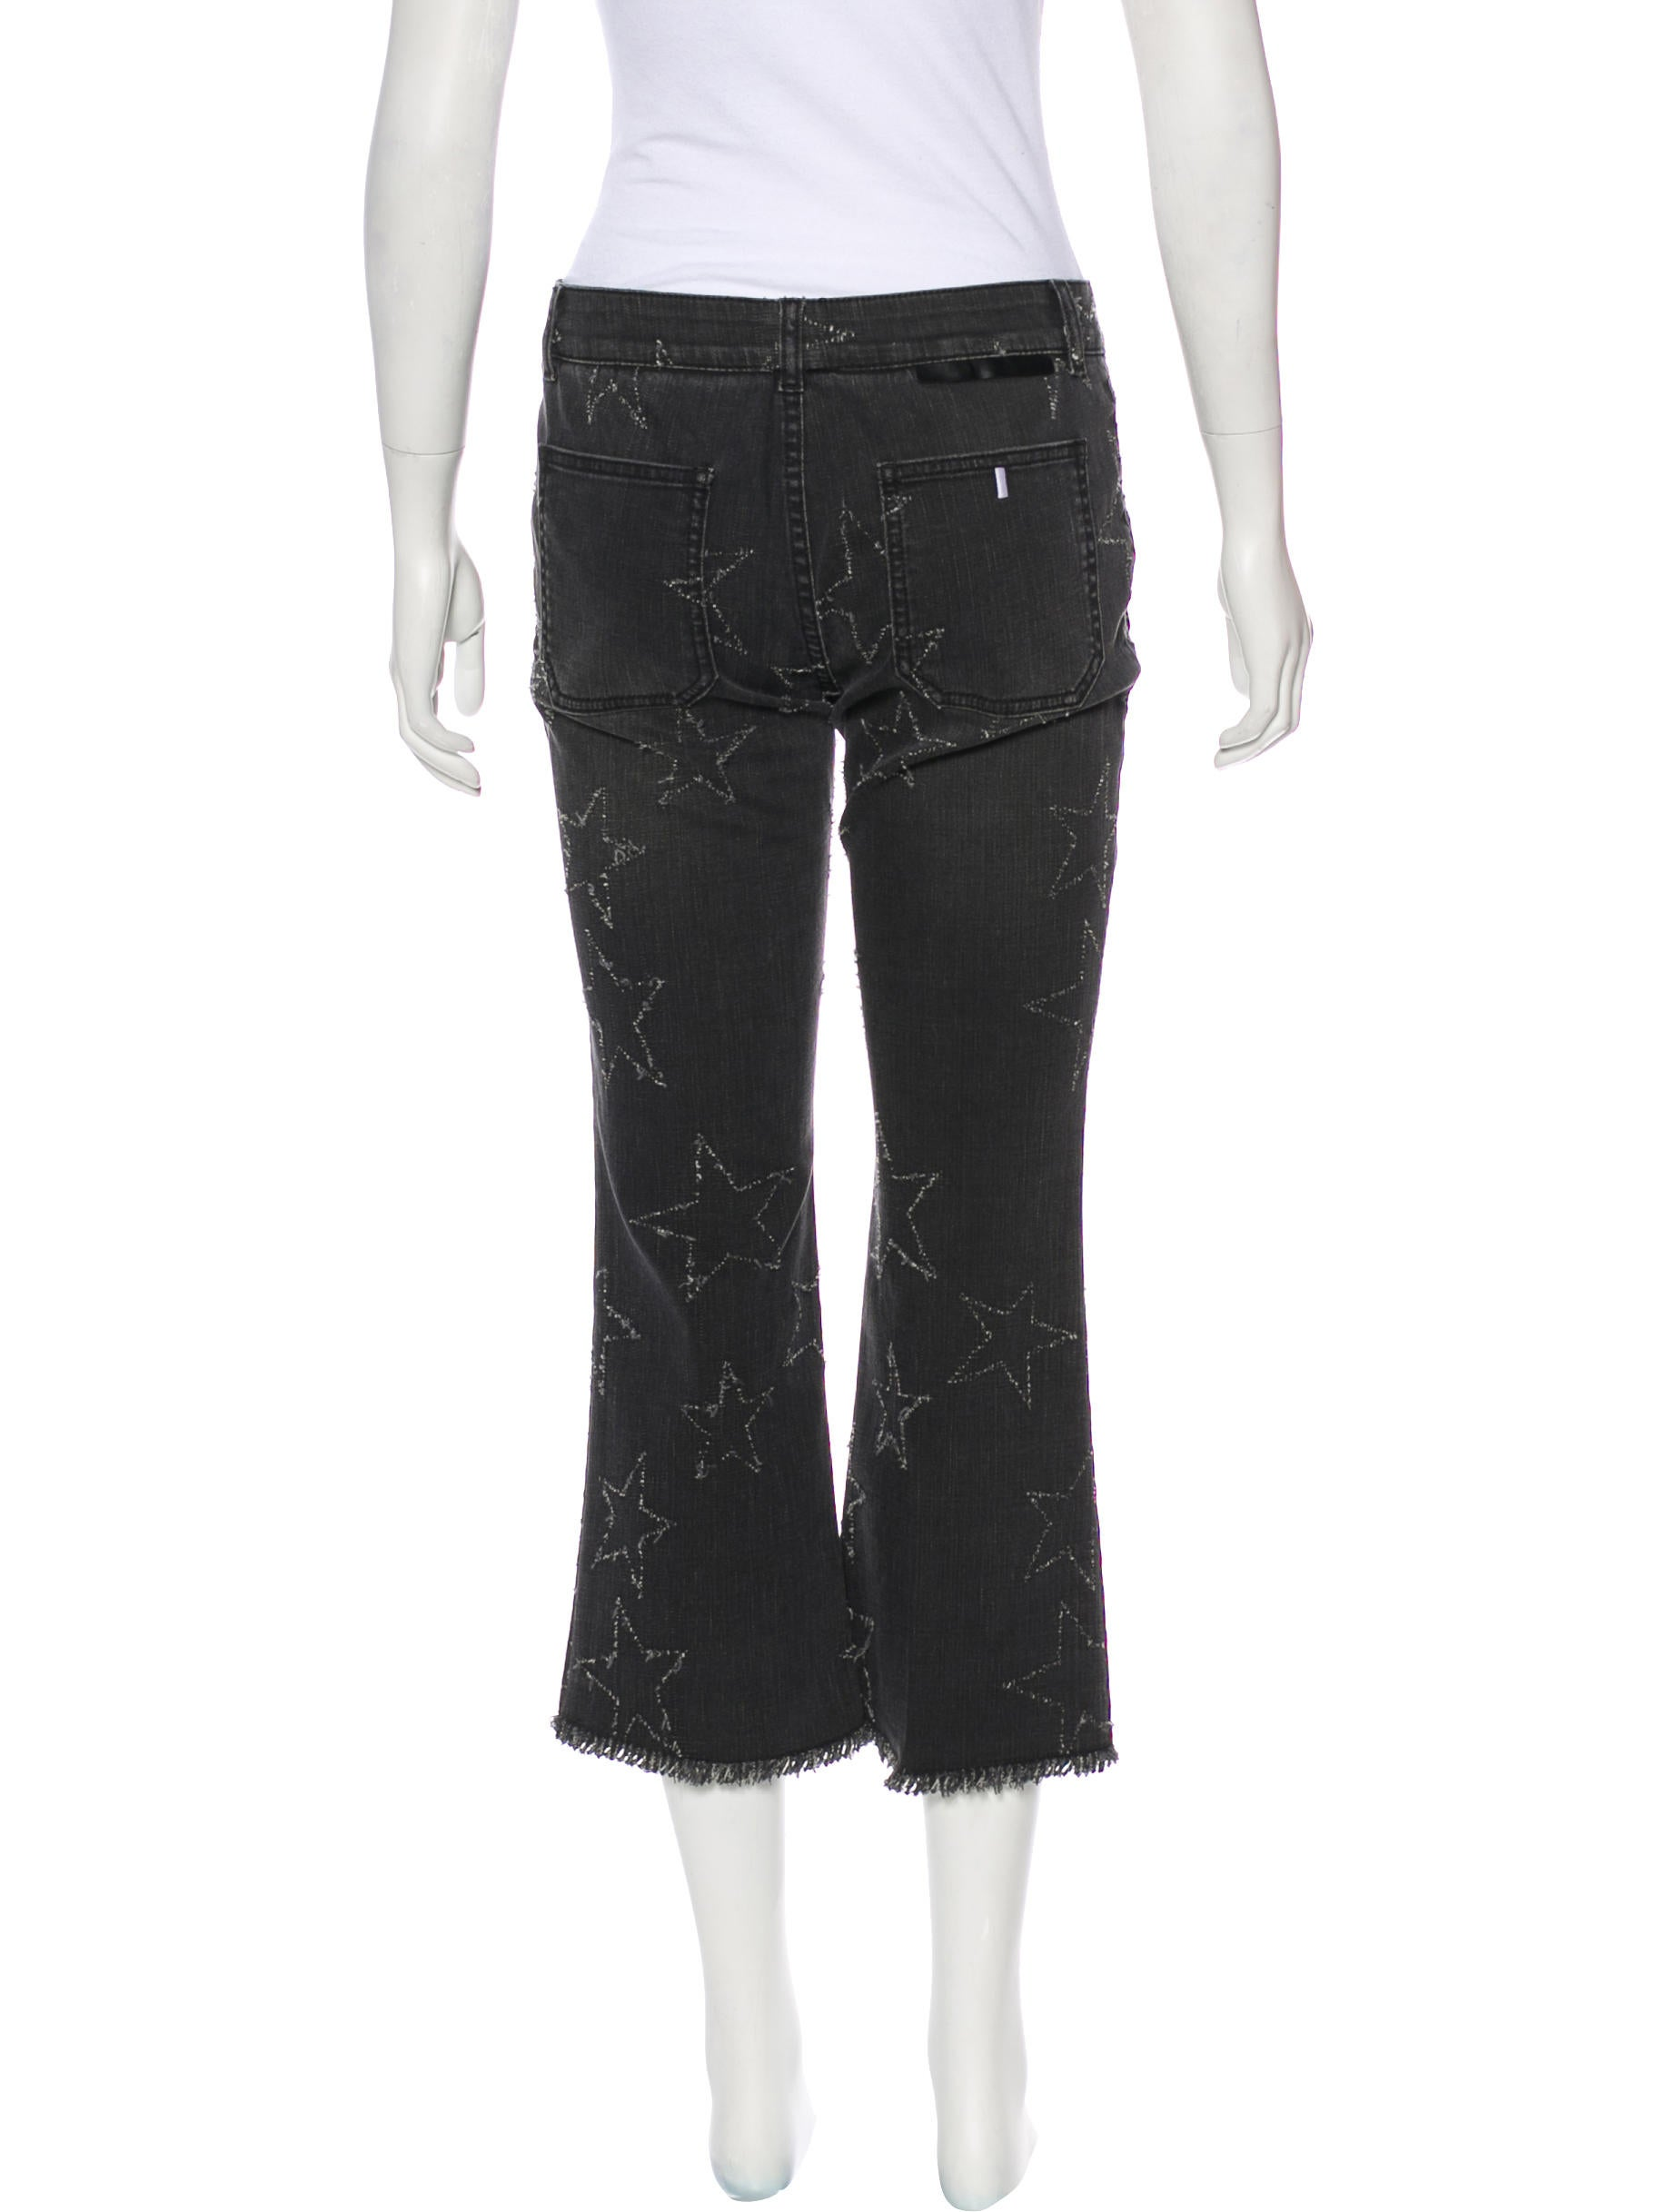 Stella McCartney Star Embroidered Mid-Rise Jeans - Clothing - STL58513 | The RealReal